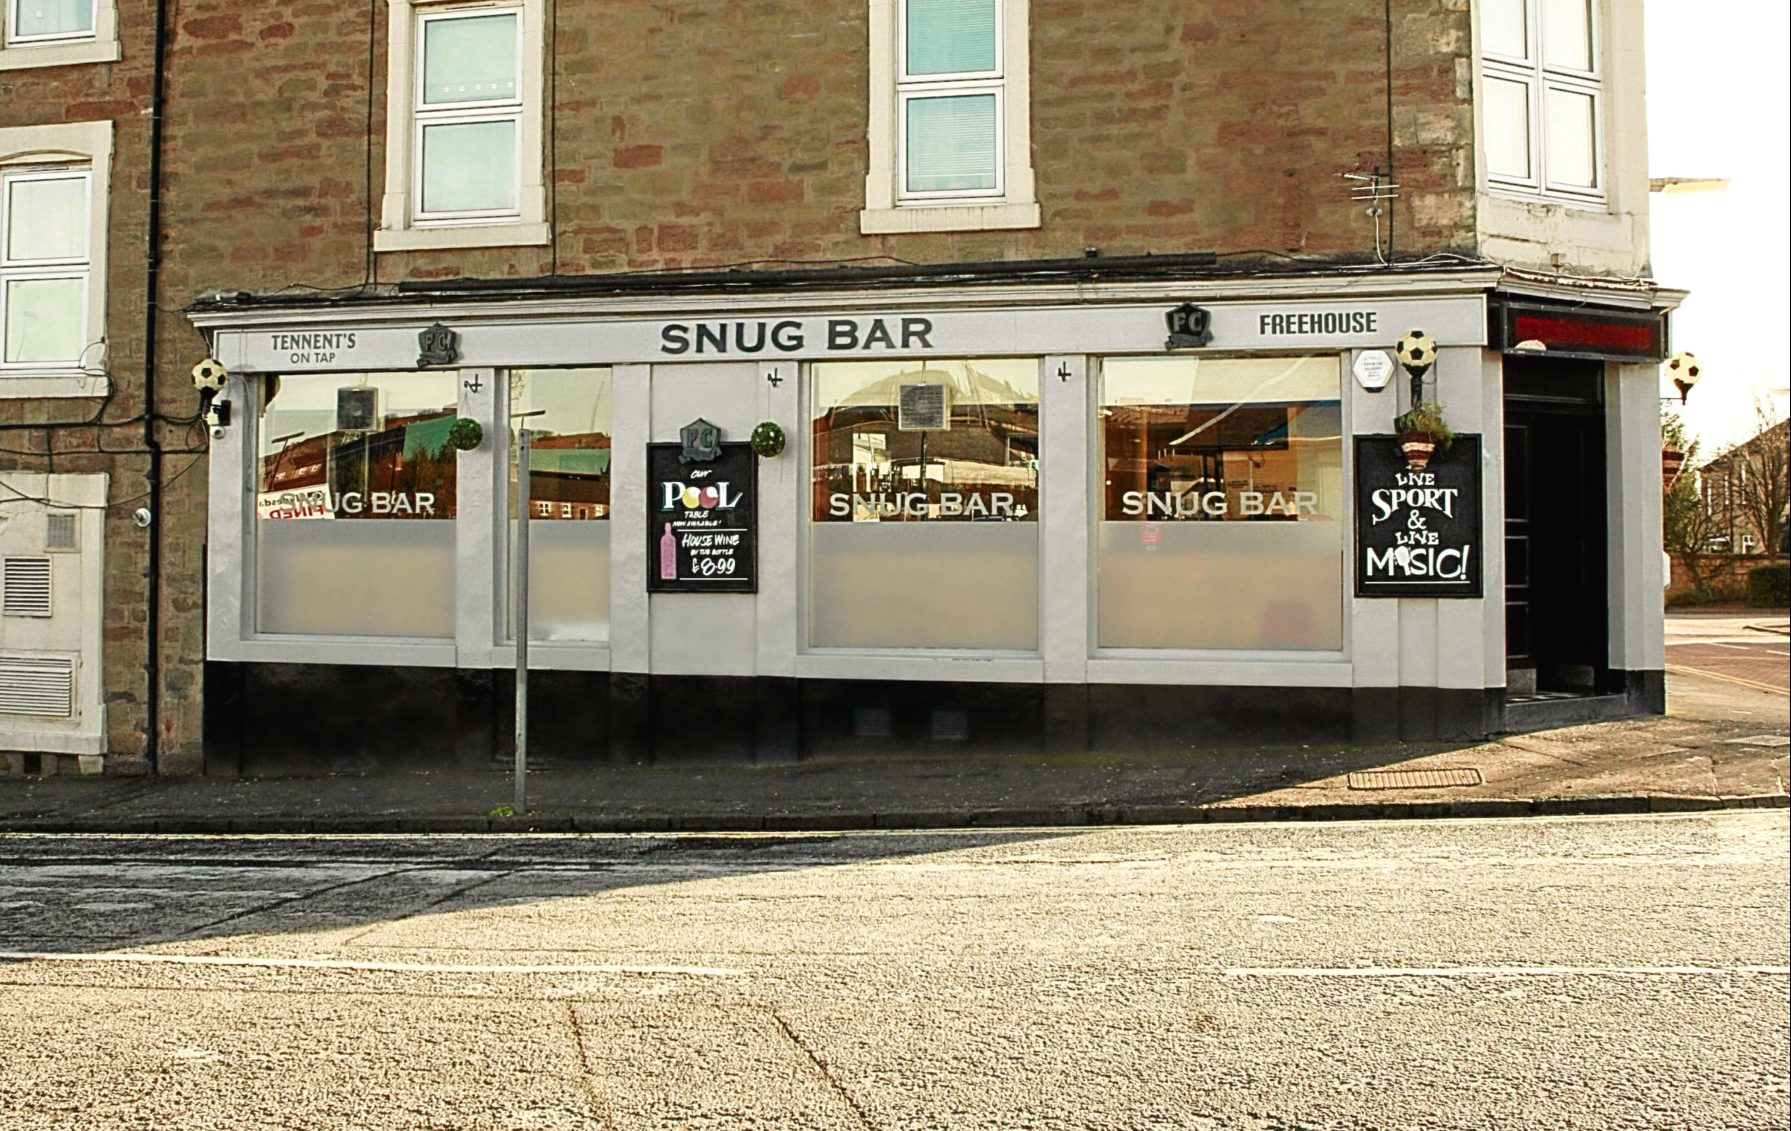 The Snug Bar at the corner of Church Street and Main Street in the Hilltown.